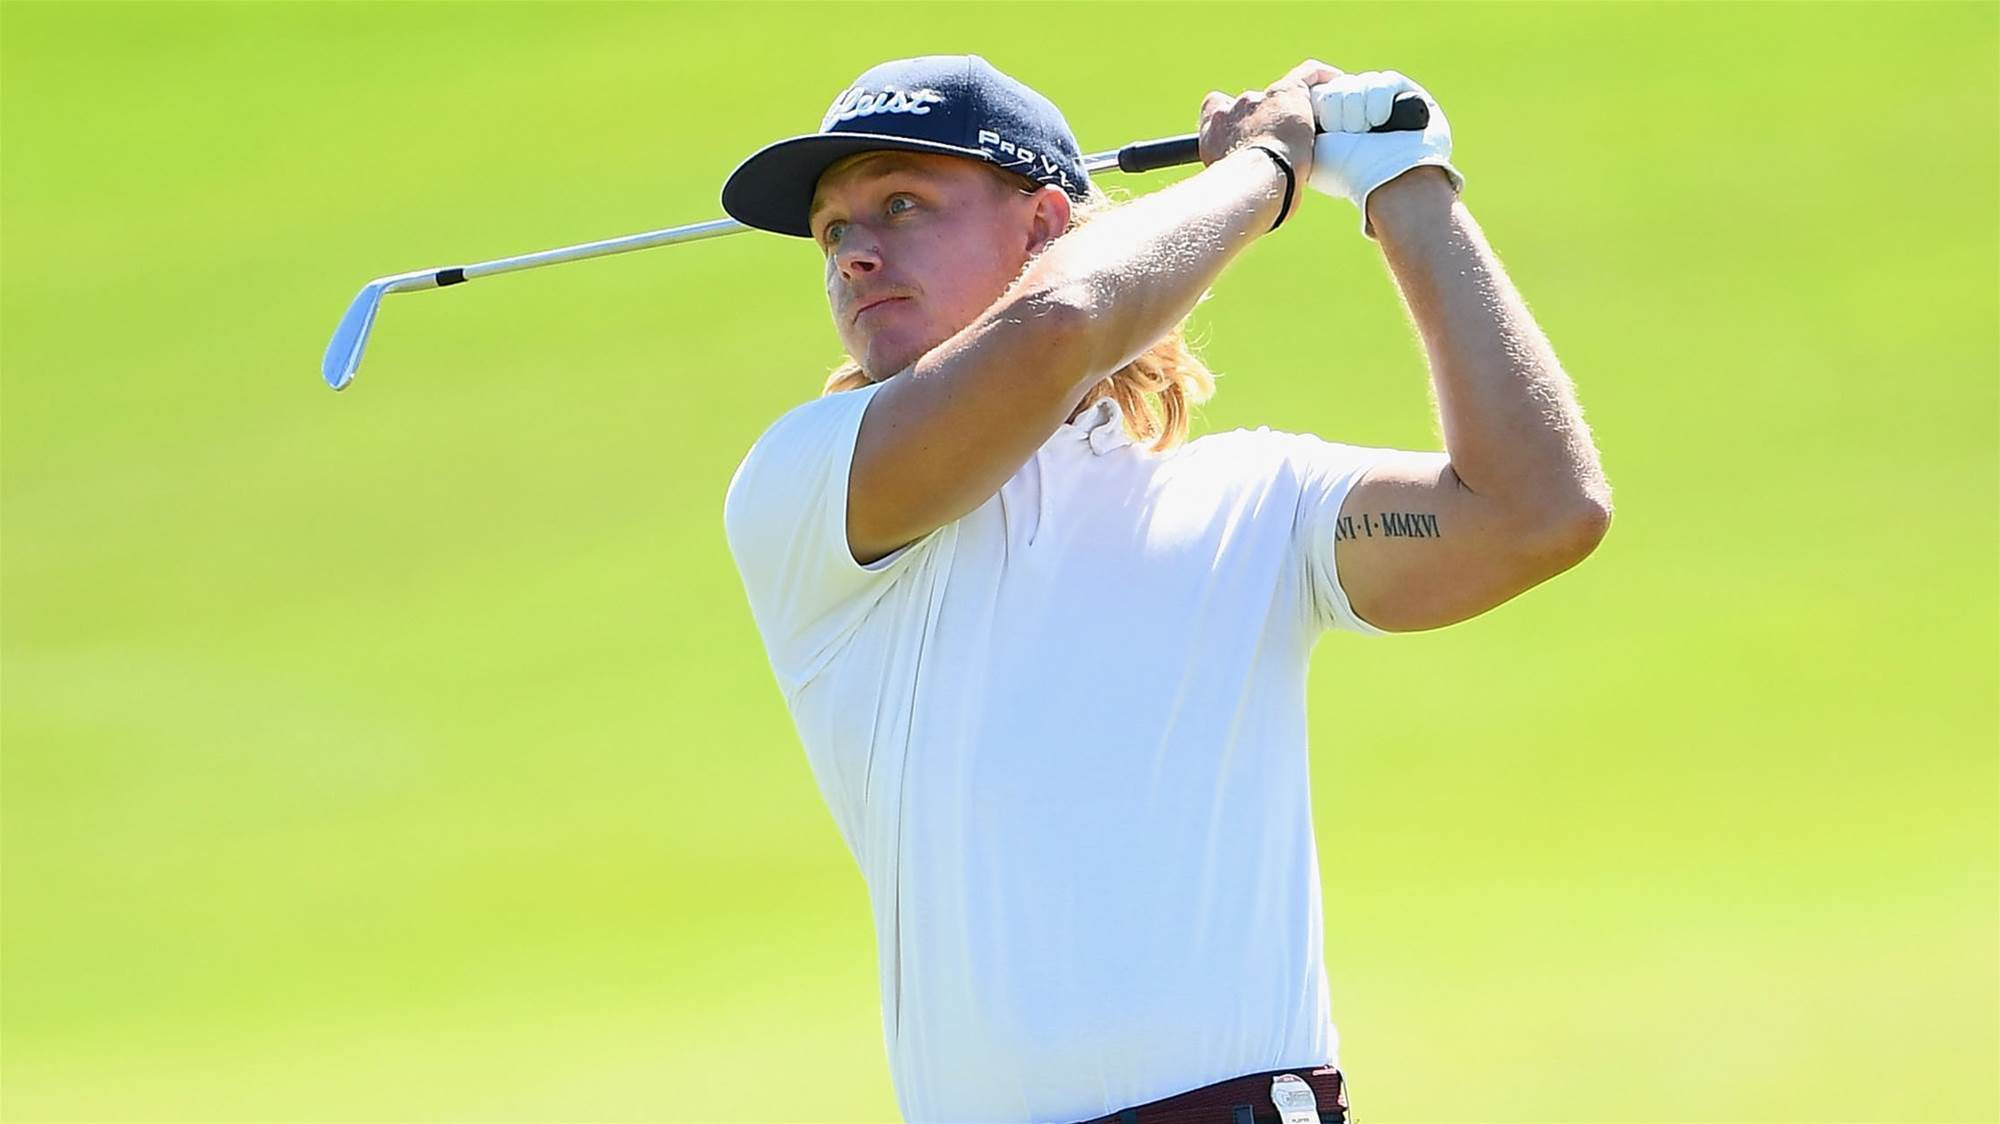 Aussie Maverick Antcliff well placed at Taiwan Masters